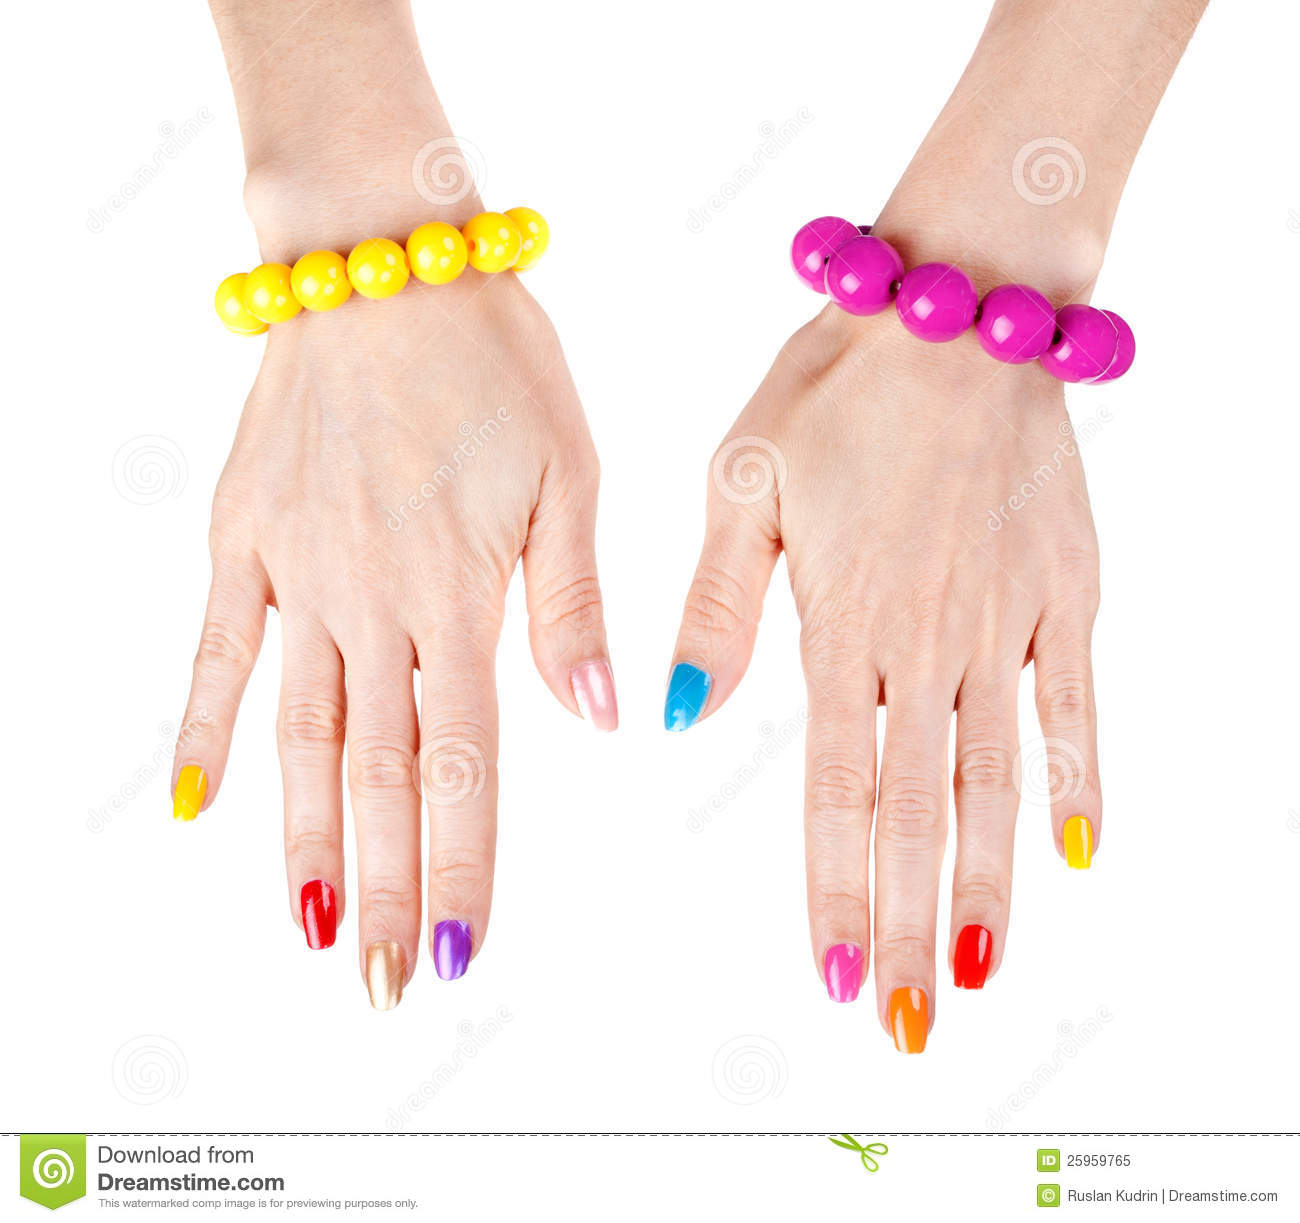 Red Nail Polish On Thumb: Women's Hands With Multi-colored Nail Polish Royalty Free